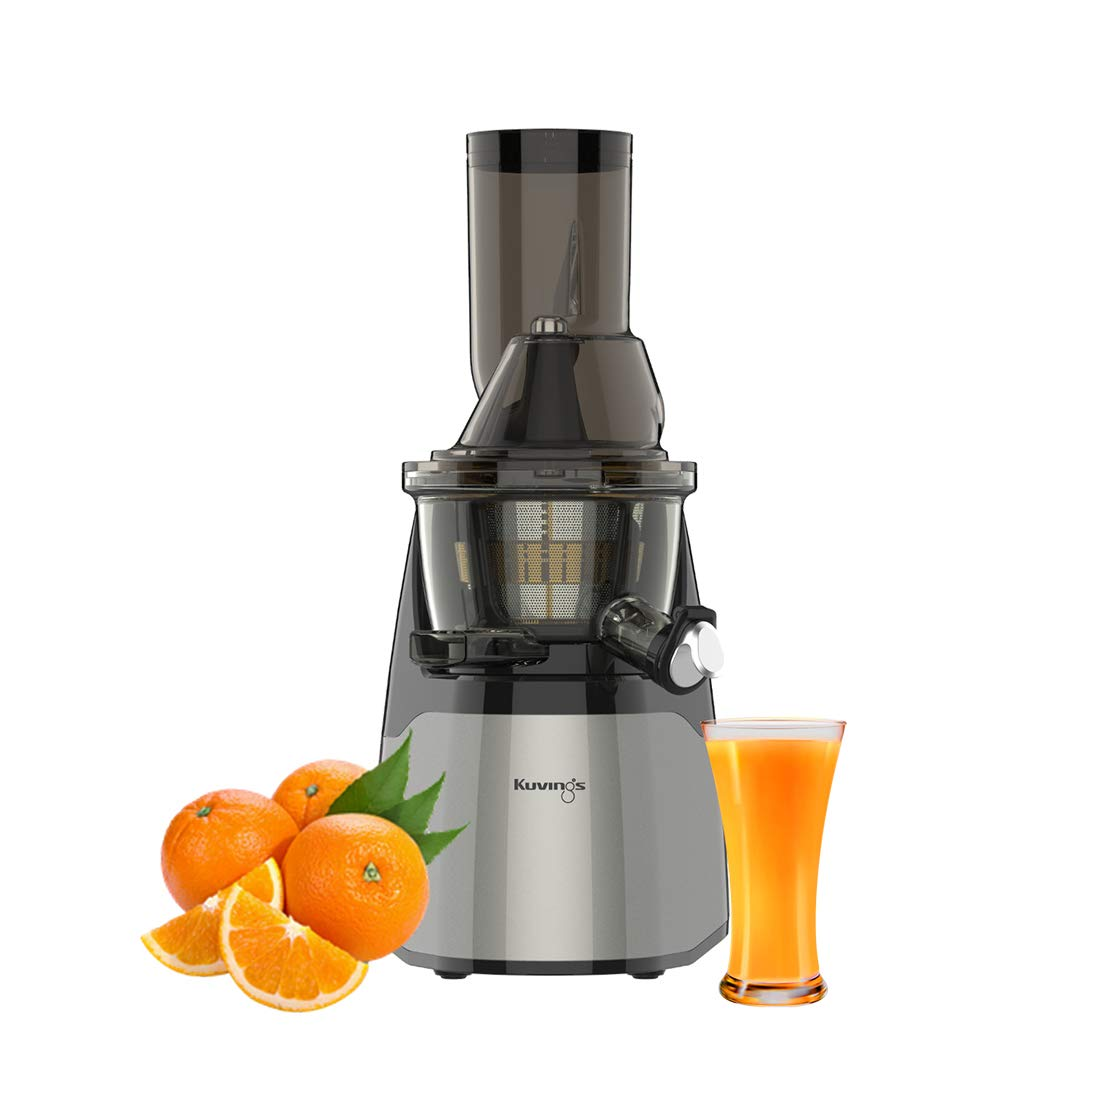 Kuvings Evo-Series Juicer Machine (Cold Press Juicer)